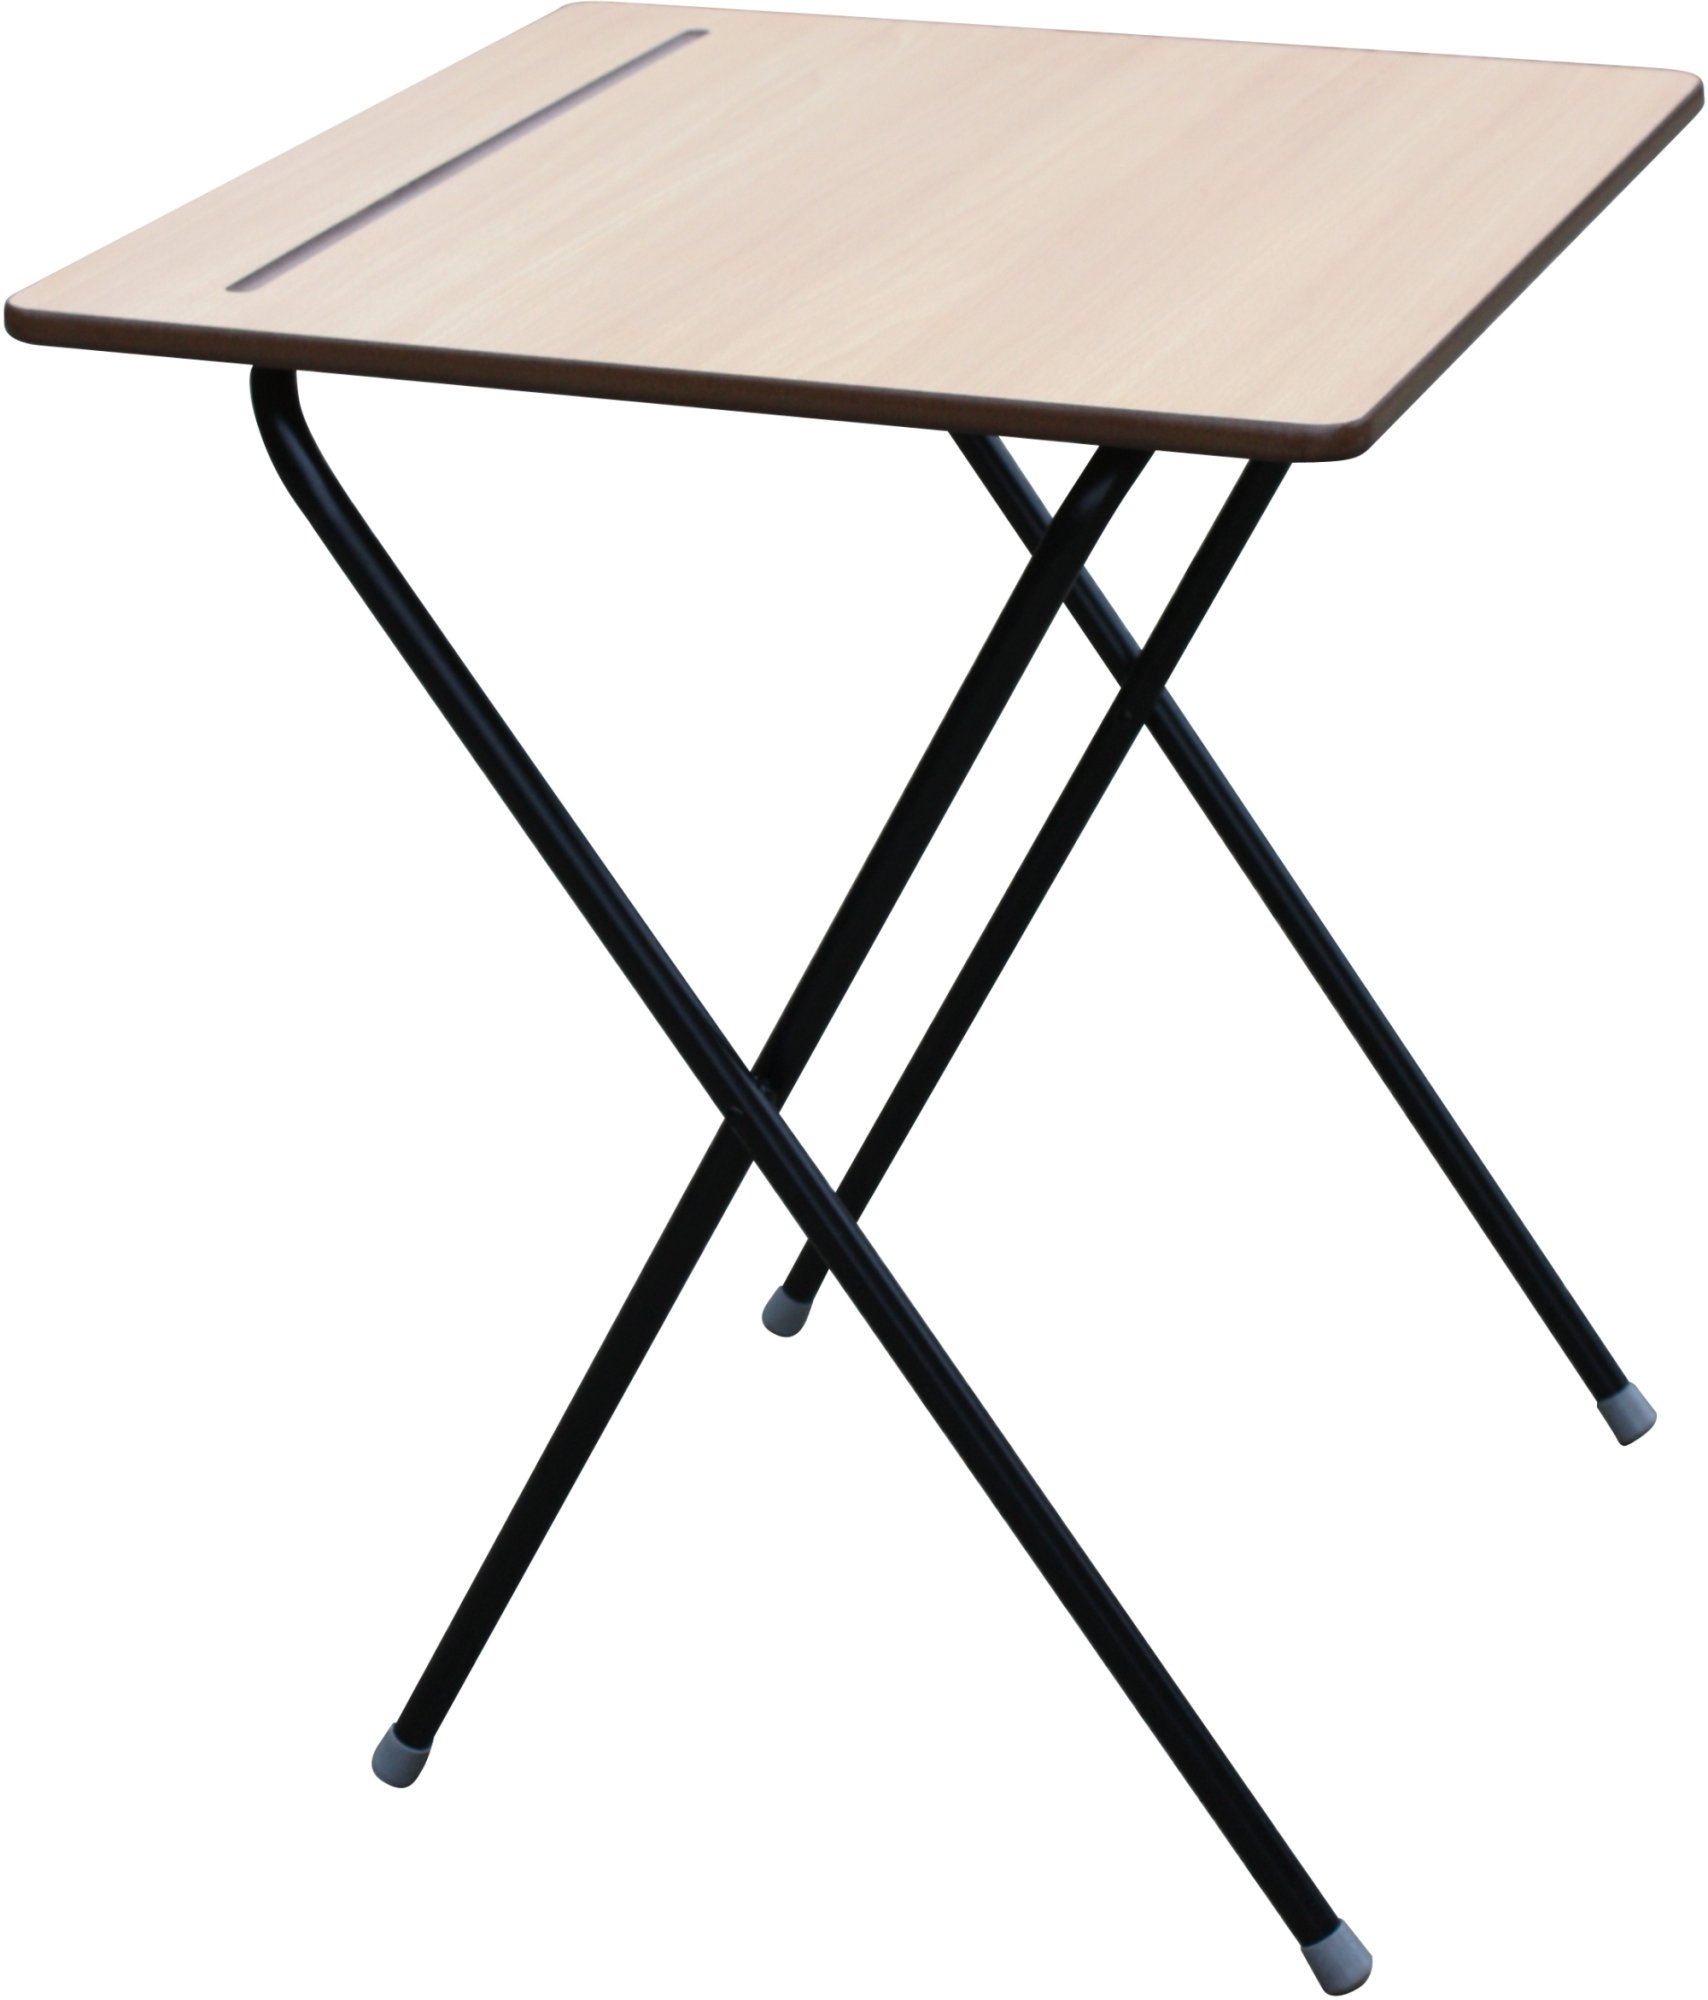 Quick Furniture Range Desks Pictures to pin on Pinterest